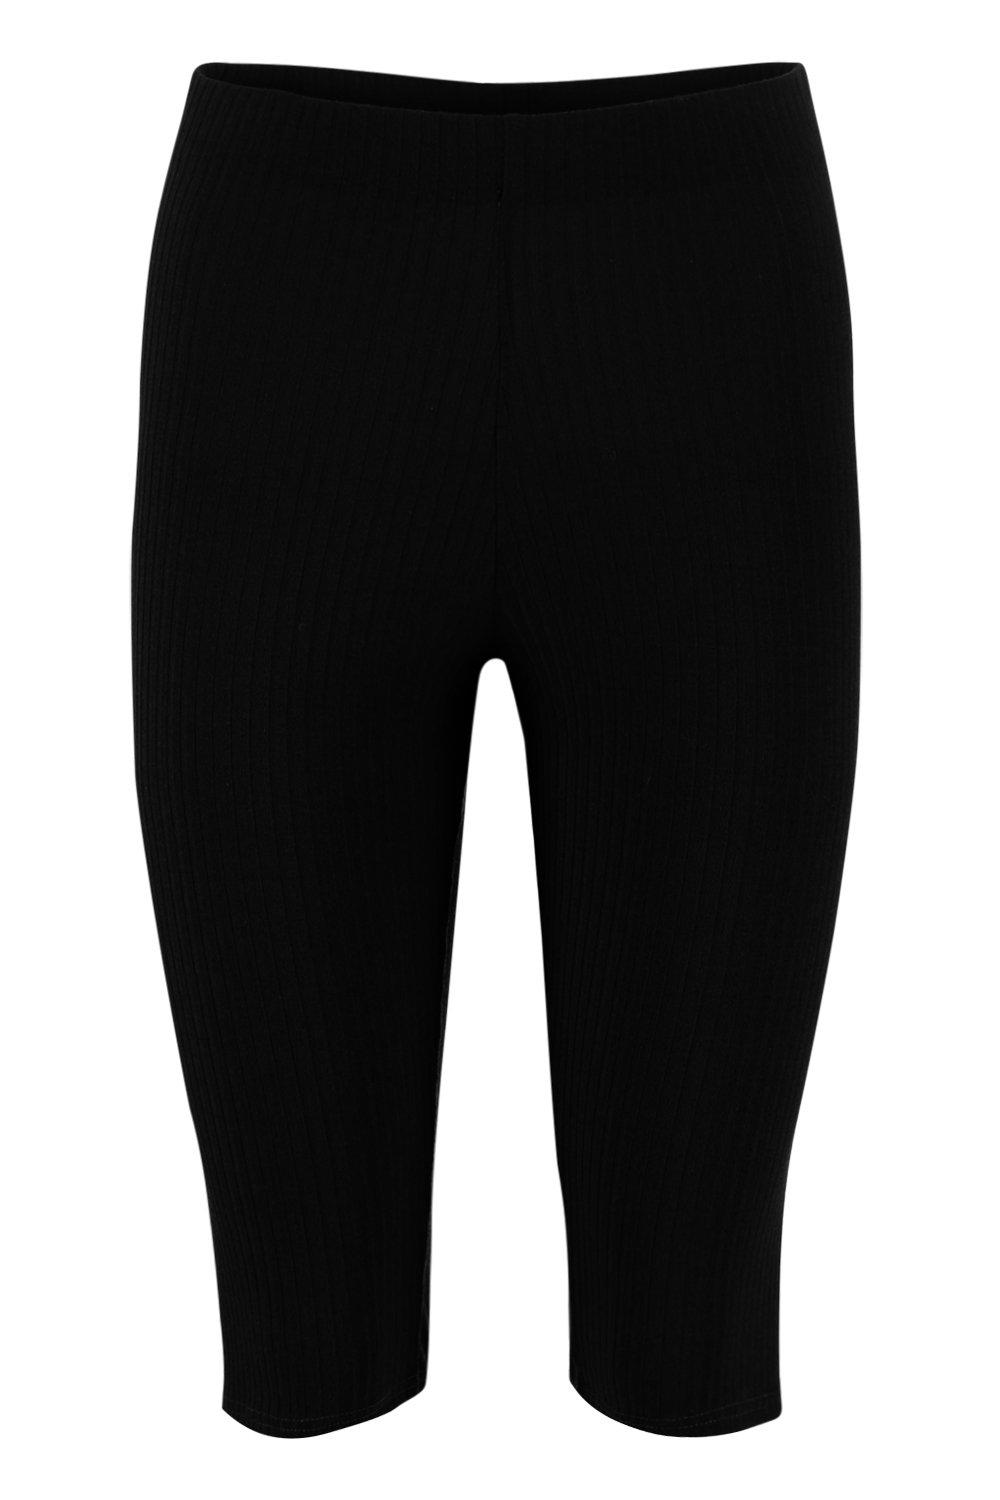 Rib Knit Cycling Short Longline black UYUw7rqA